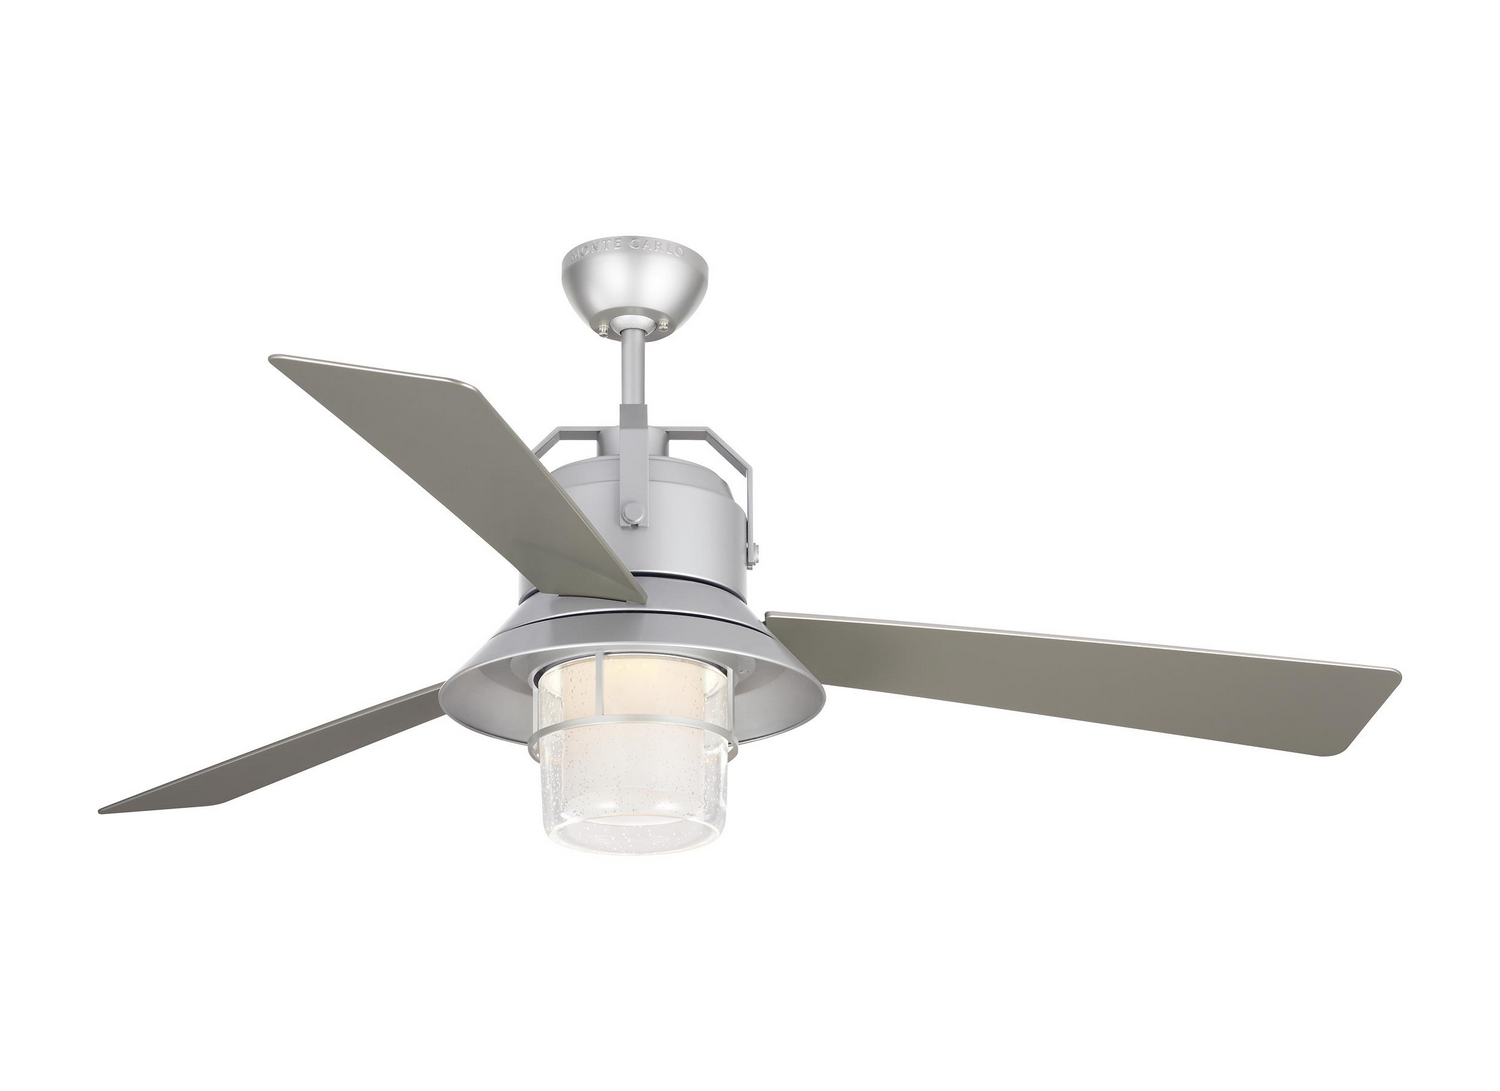 54 inchCeiling Fan from the Boynton 54 collection by Monte Carlo 3BTR54PBSD